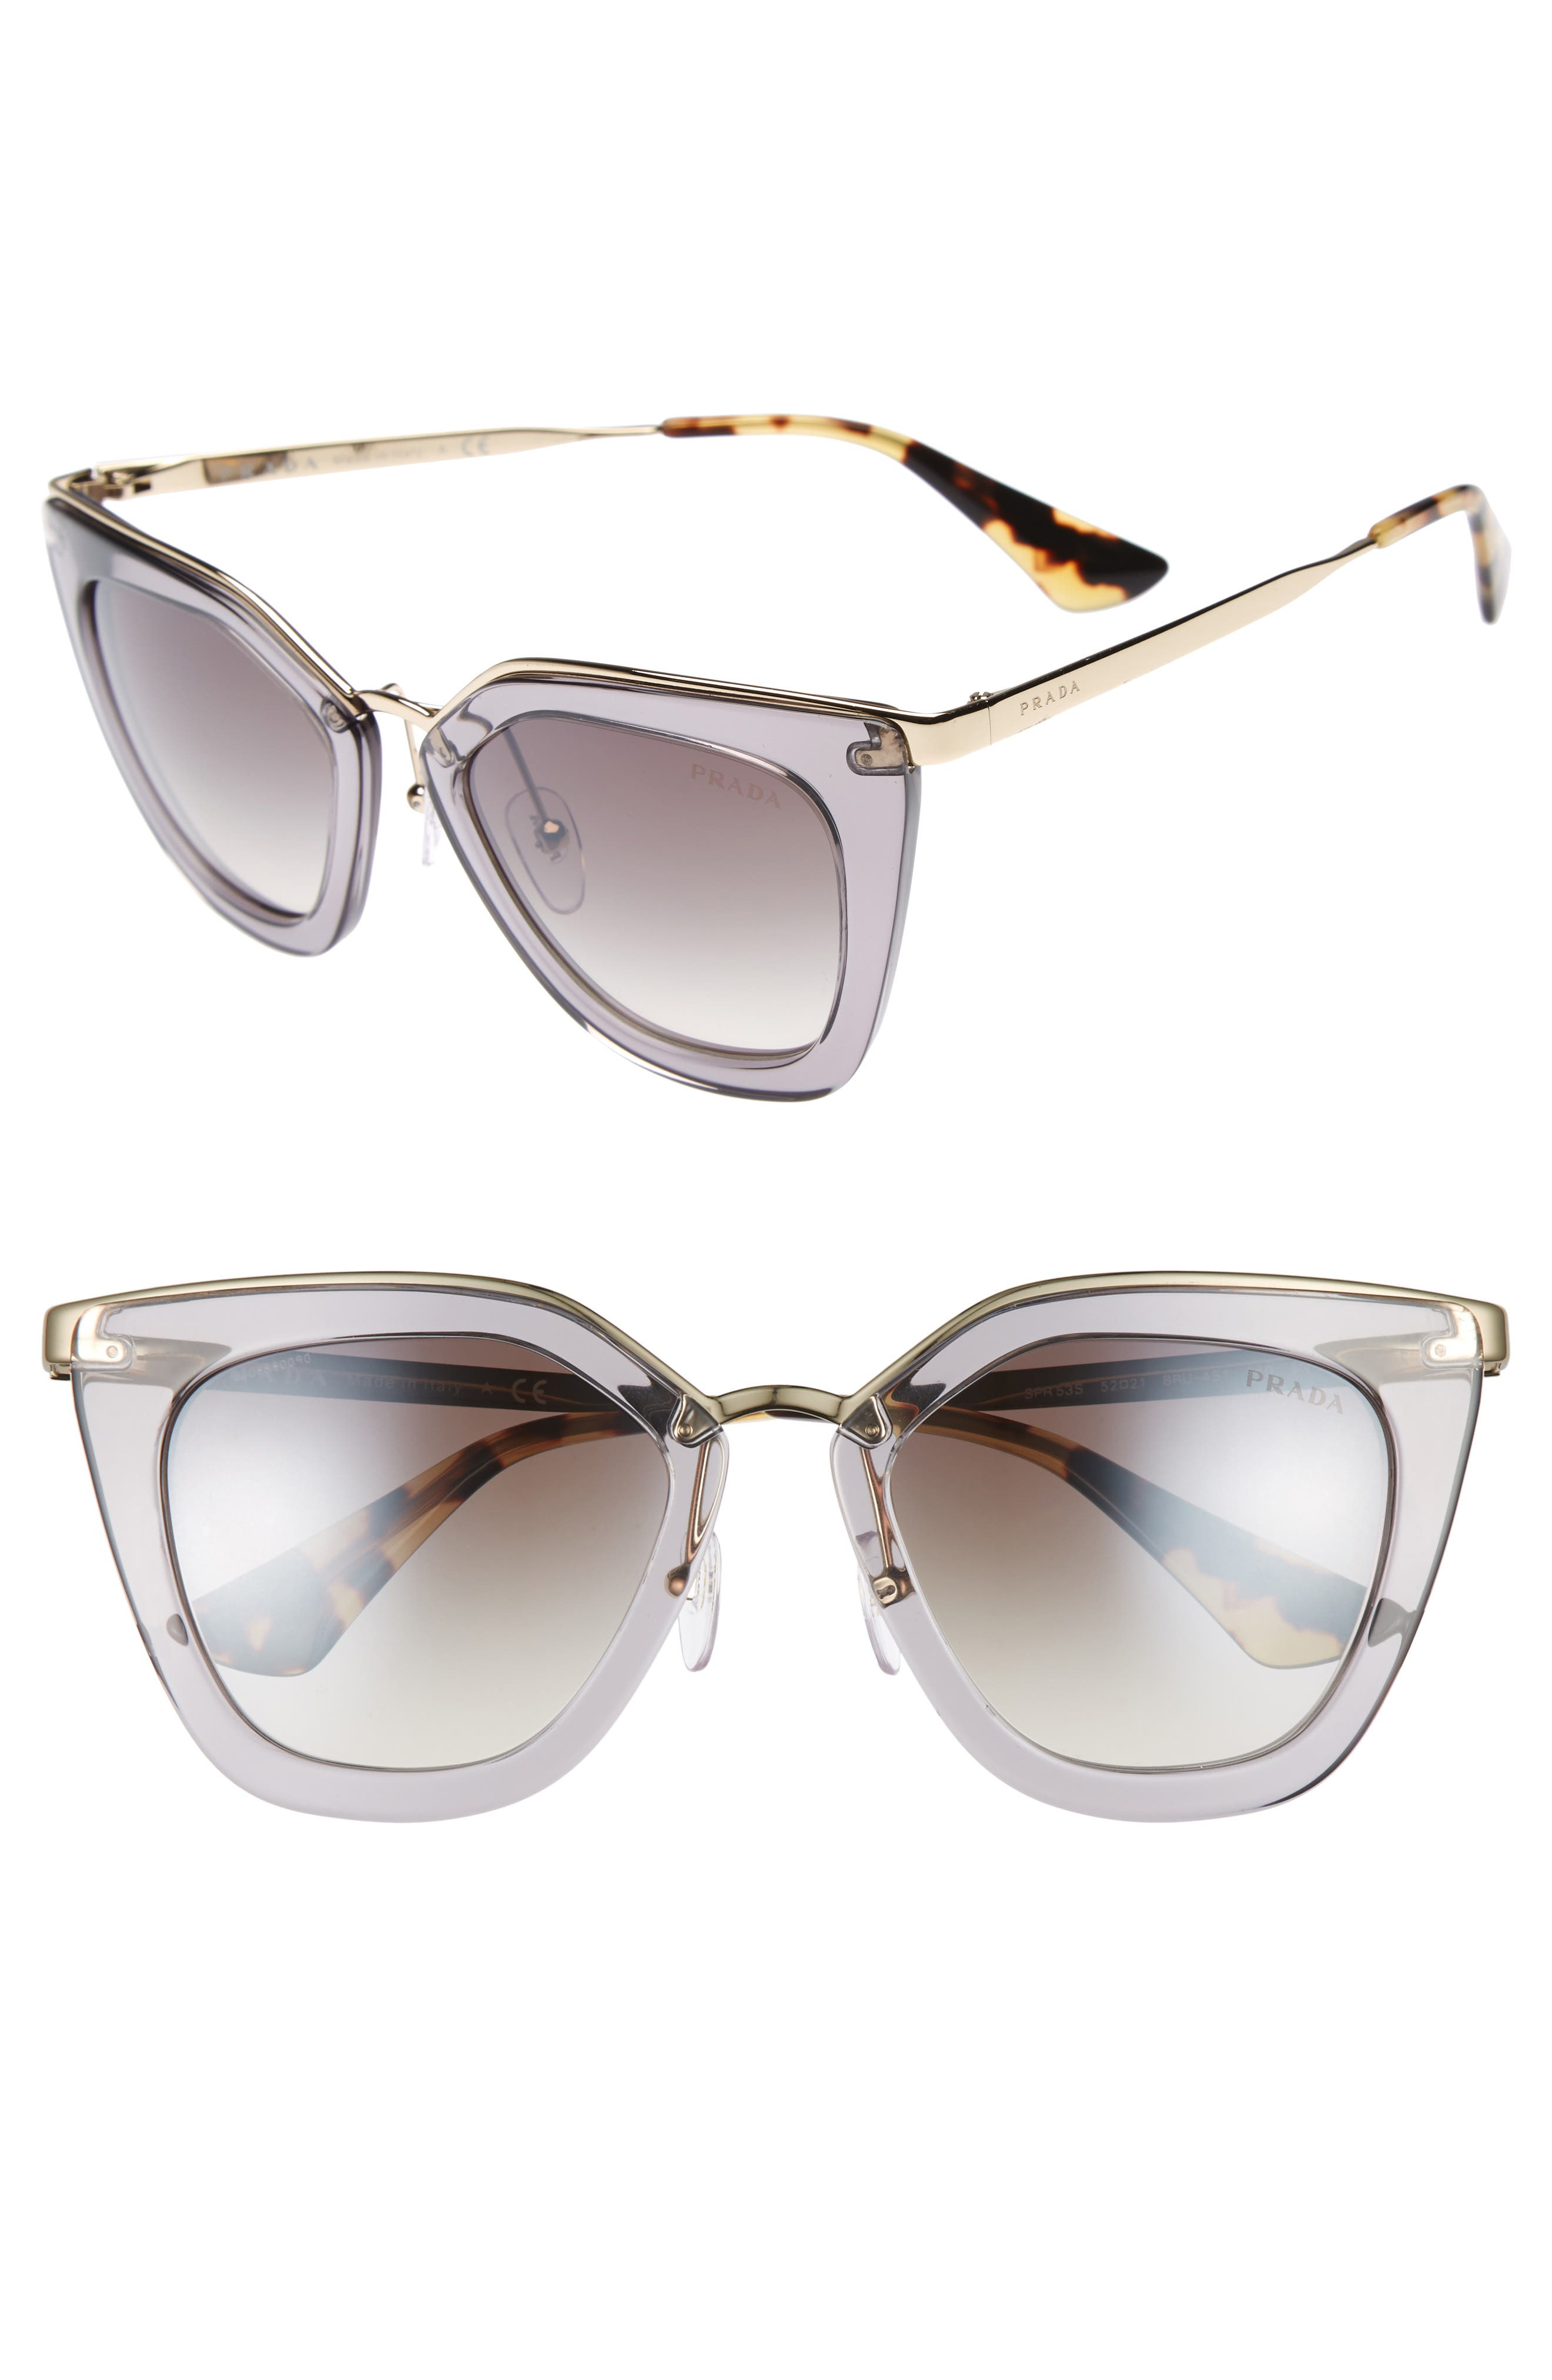 Prada 52mm Gradient Cat Eye Sunglasses